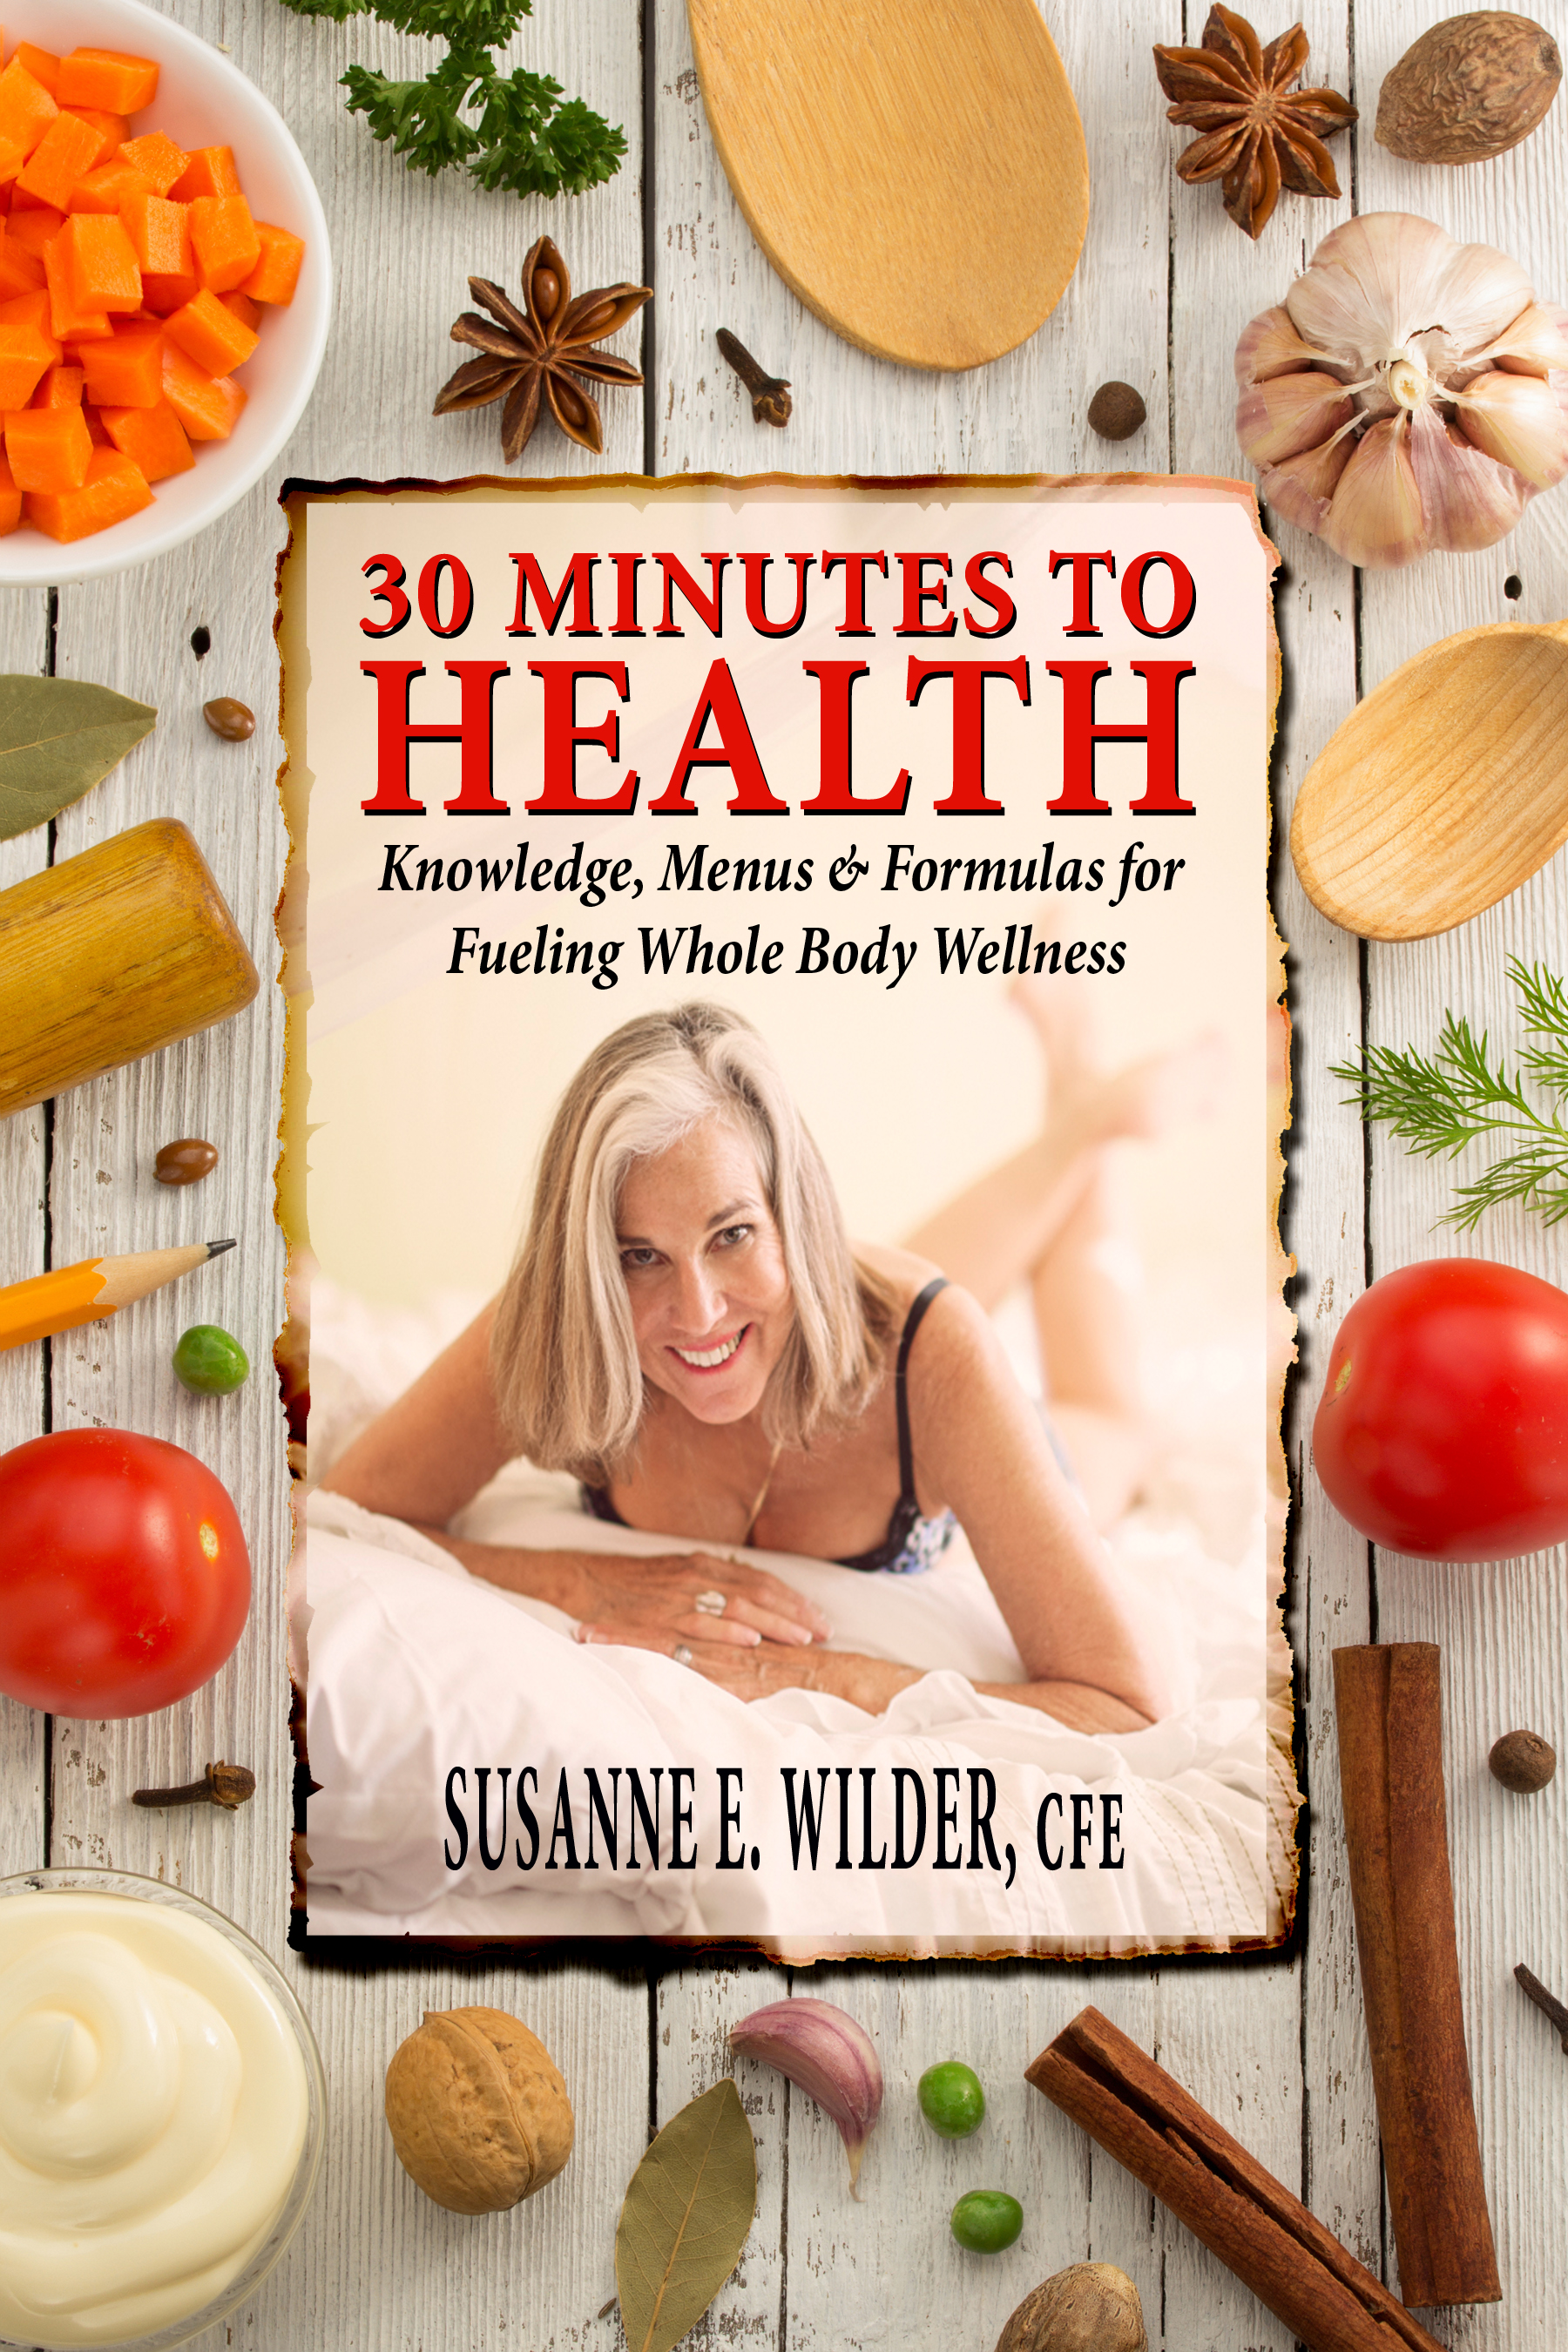 30 Minutes to Health